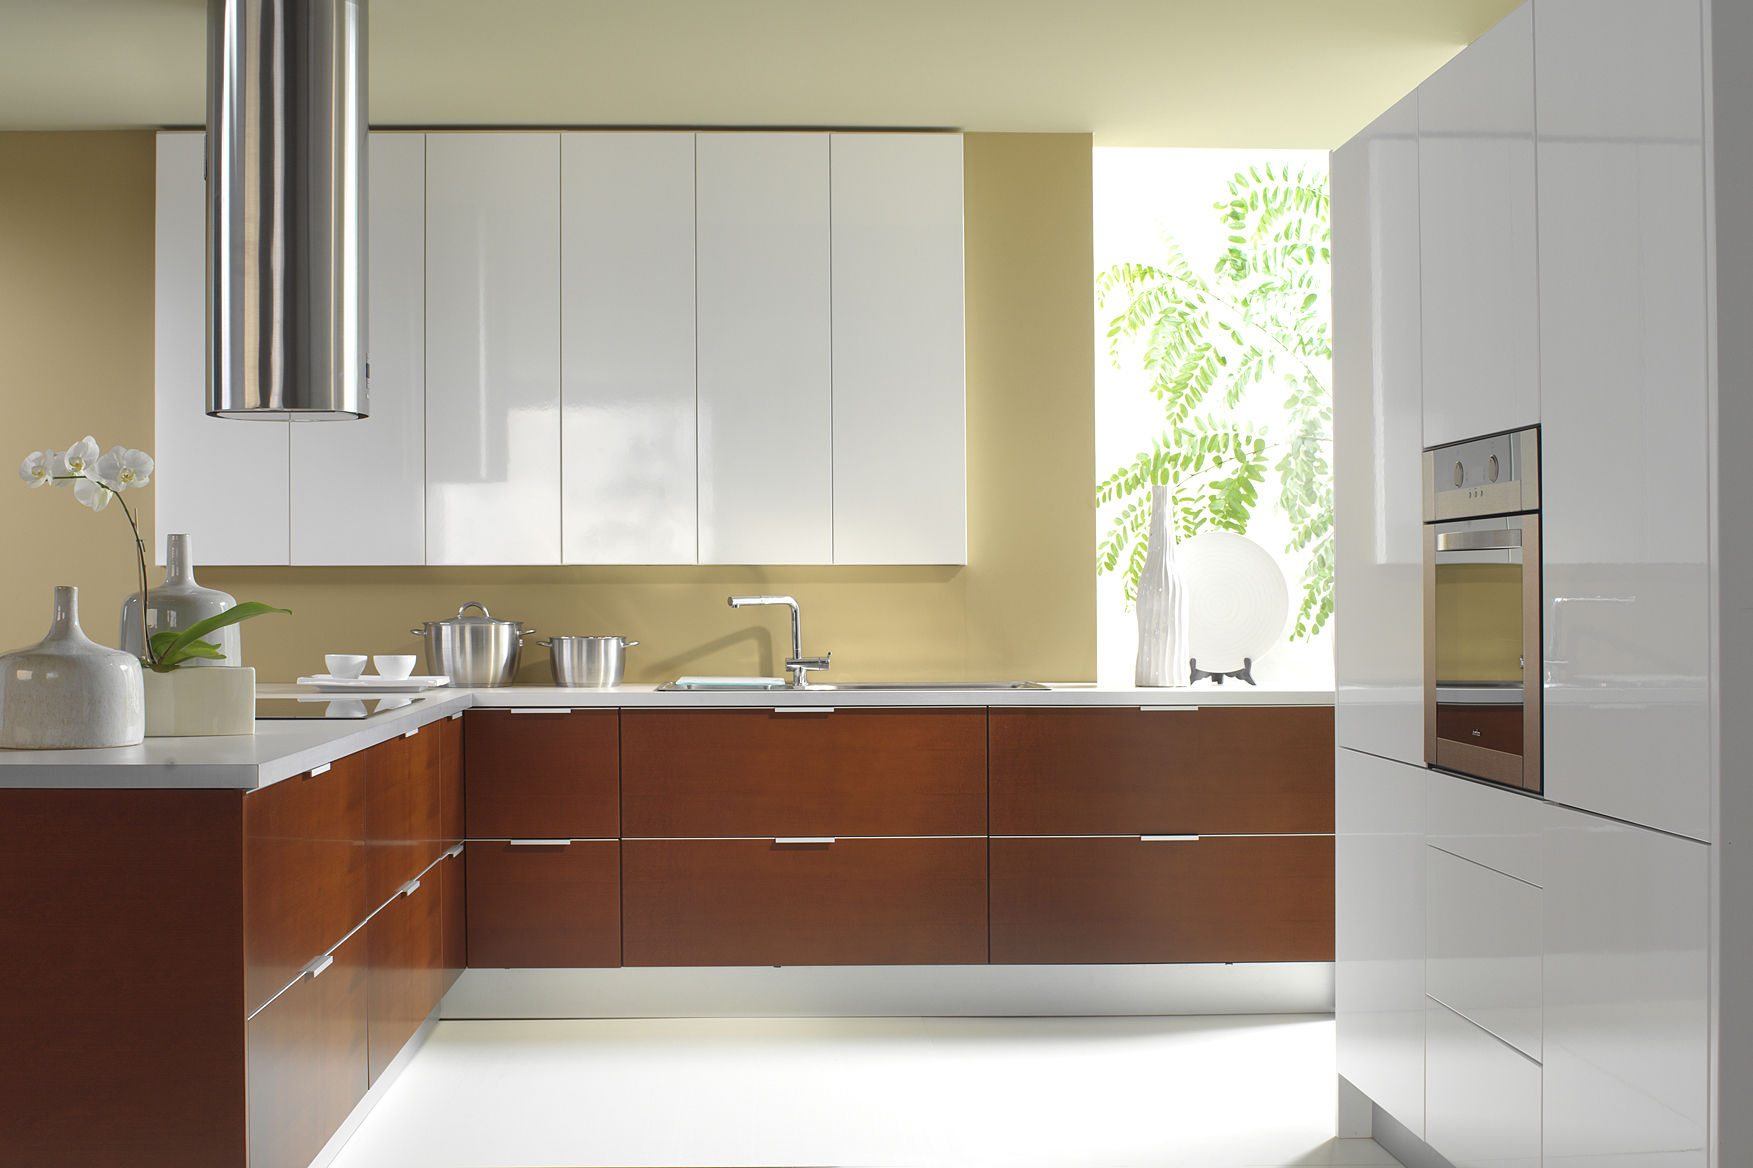 changing countertops in kitchen faucets reviews laminated furniture designs